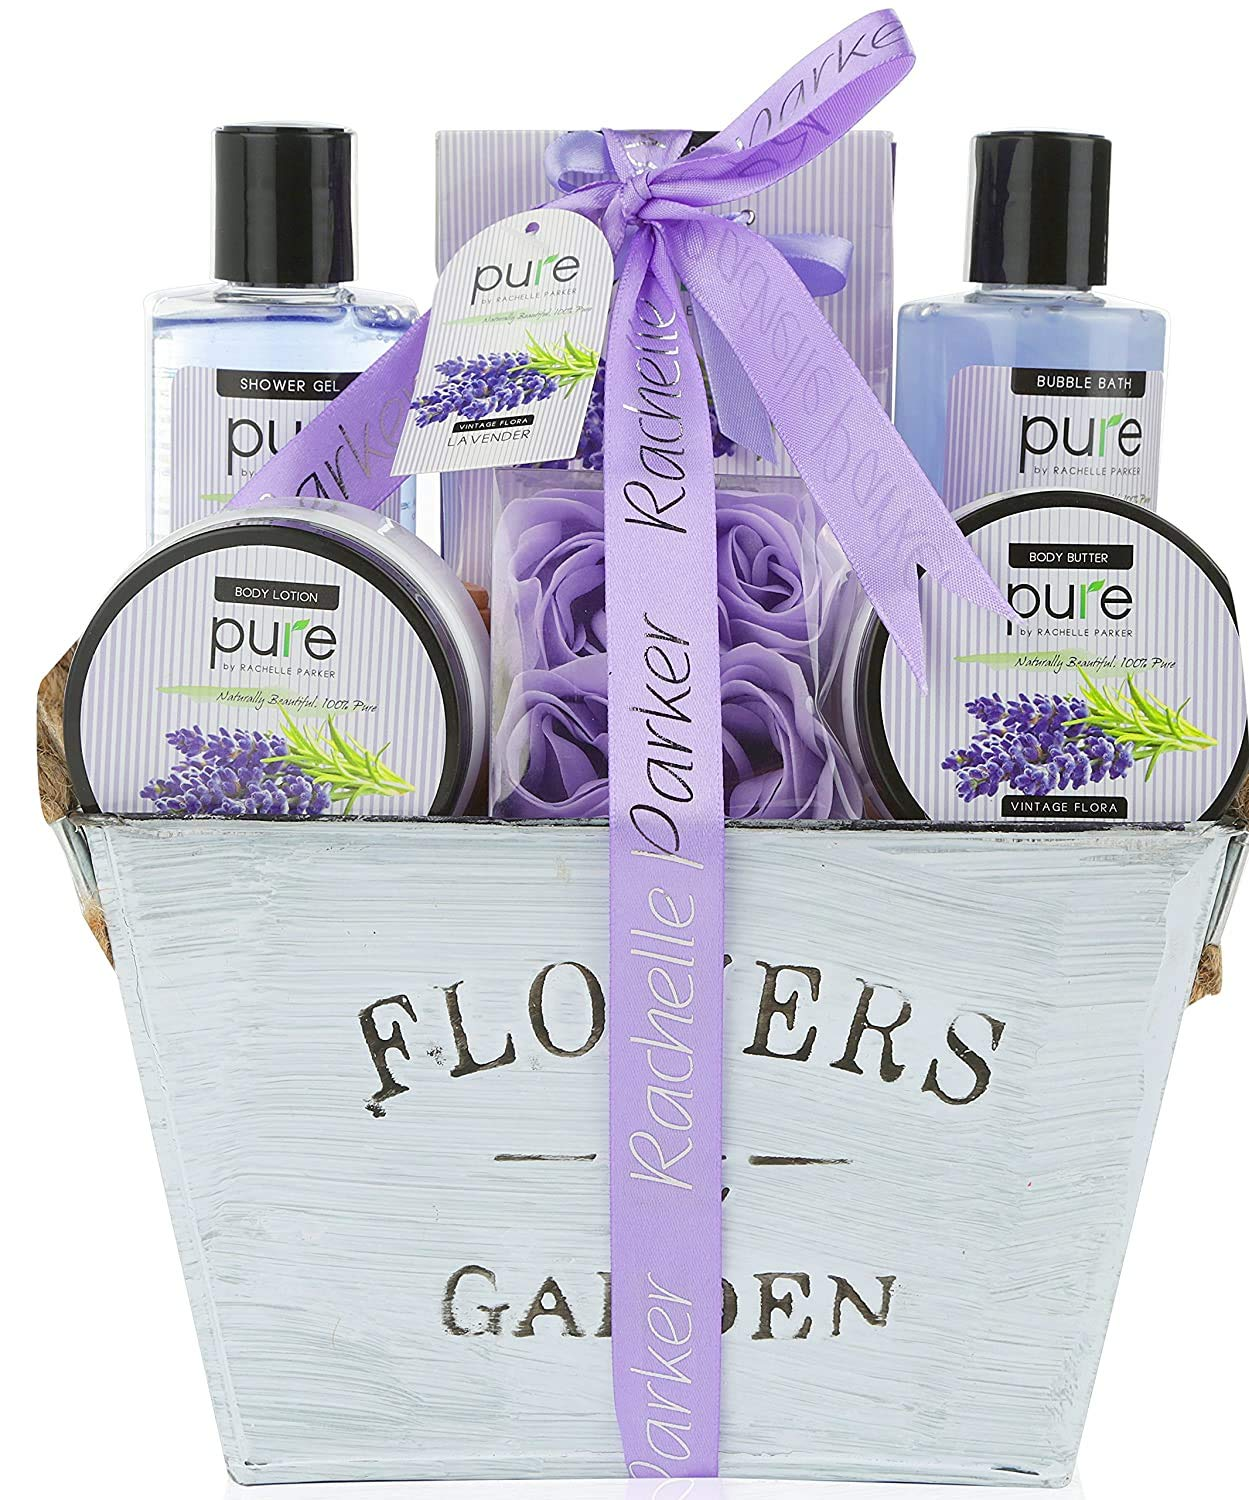 Lavender Essential Oil Spa Basket For Women. Premium Deluxe Bath & Body Basket for Women for Birthday, Thank You, Anniversary Present or even Treat Yourself!